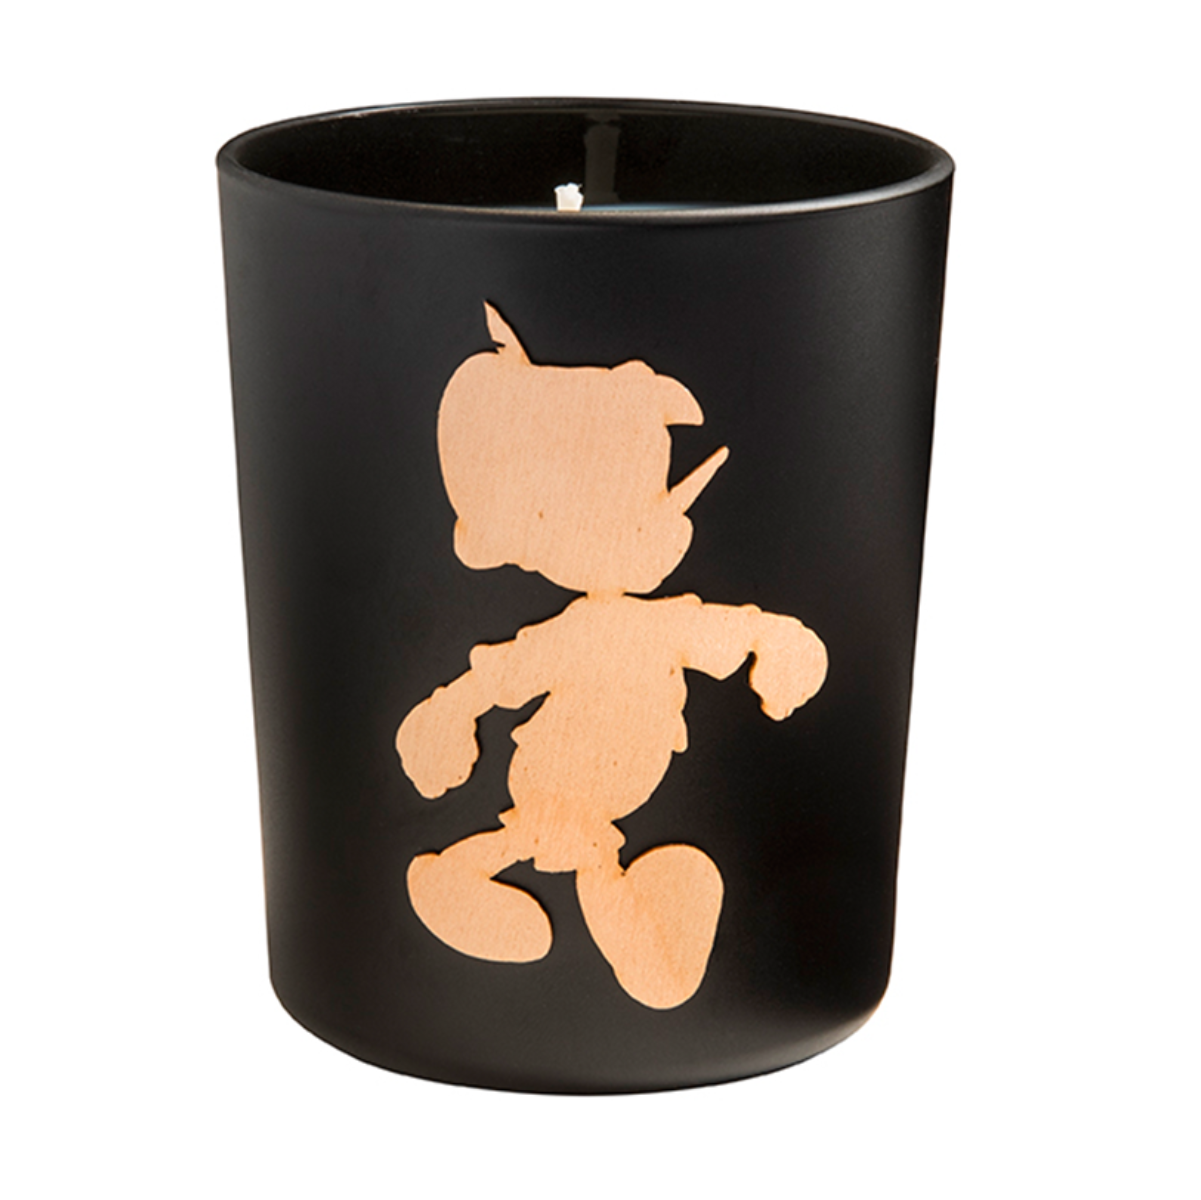 Maison Francal Disney Pinocchio 180g Vegetal Scented Candle